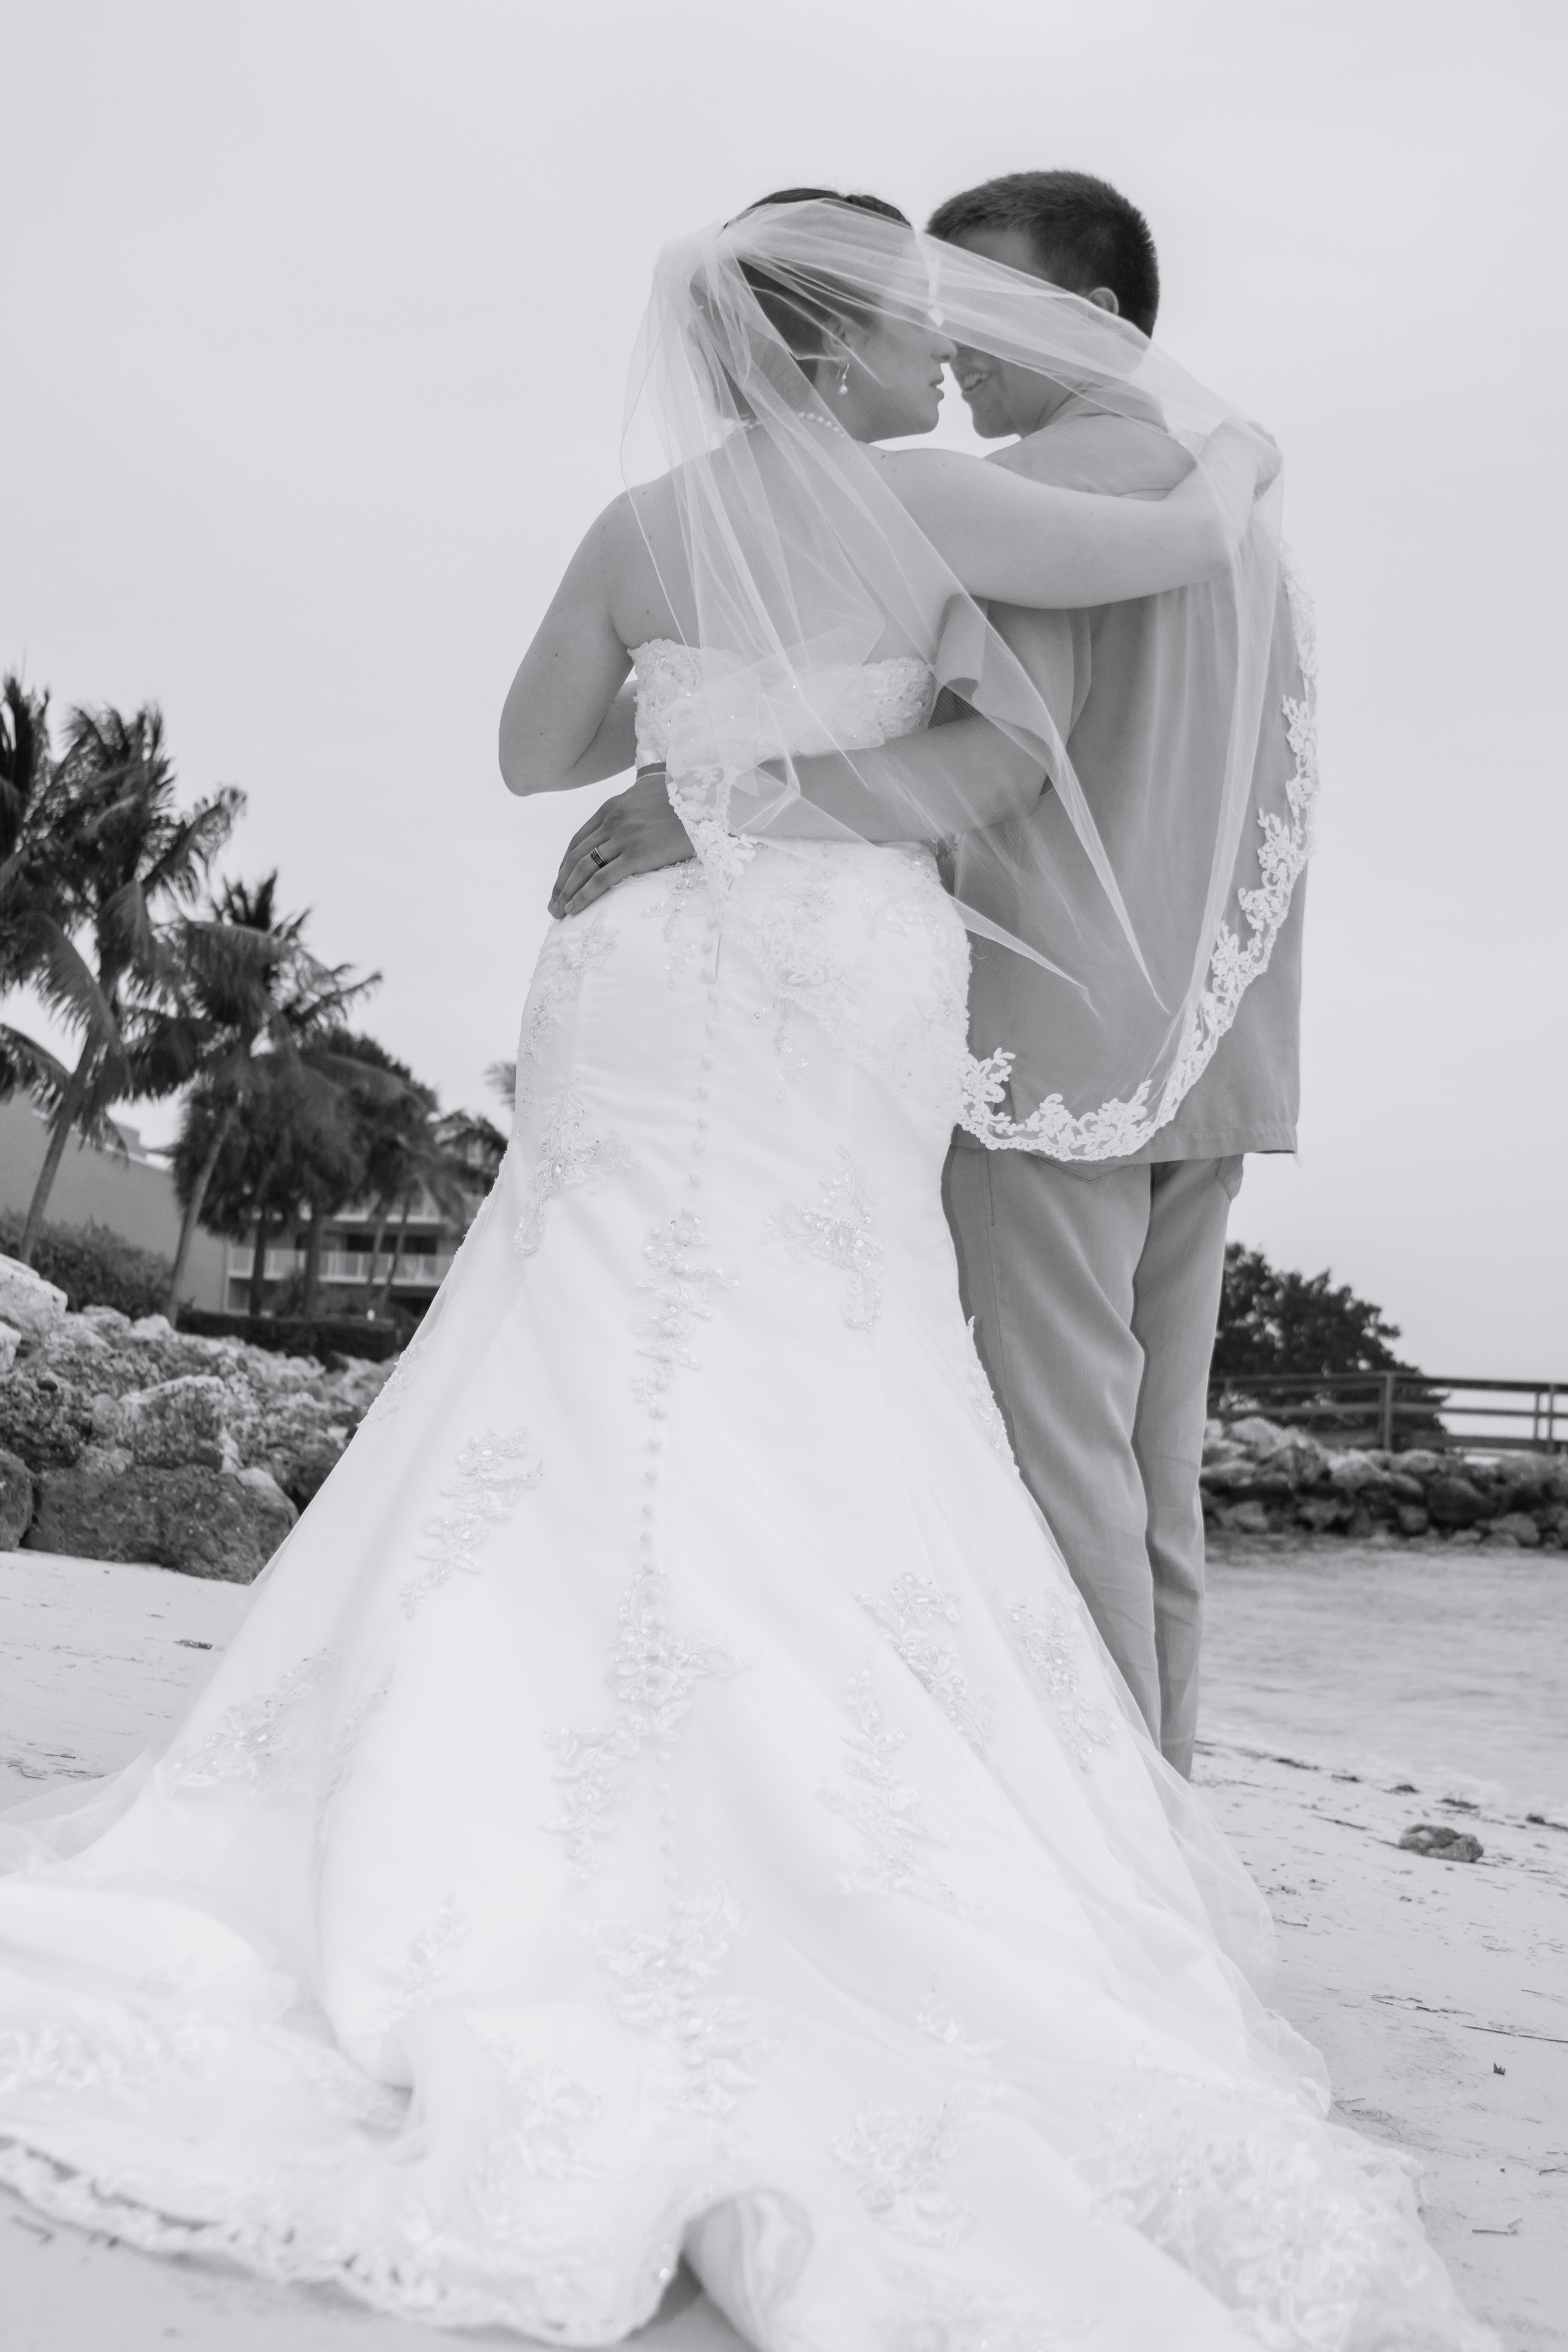 5 Bridal Gown Disasters And How To Fix Them